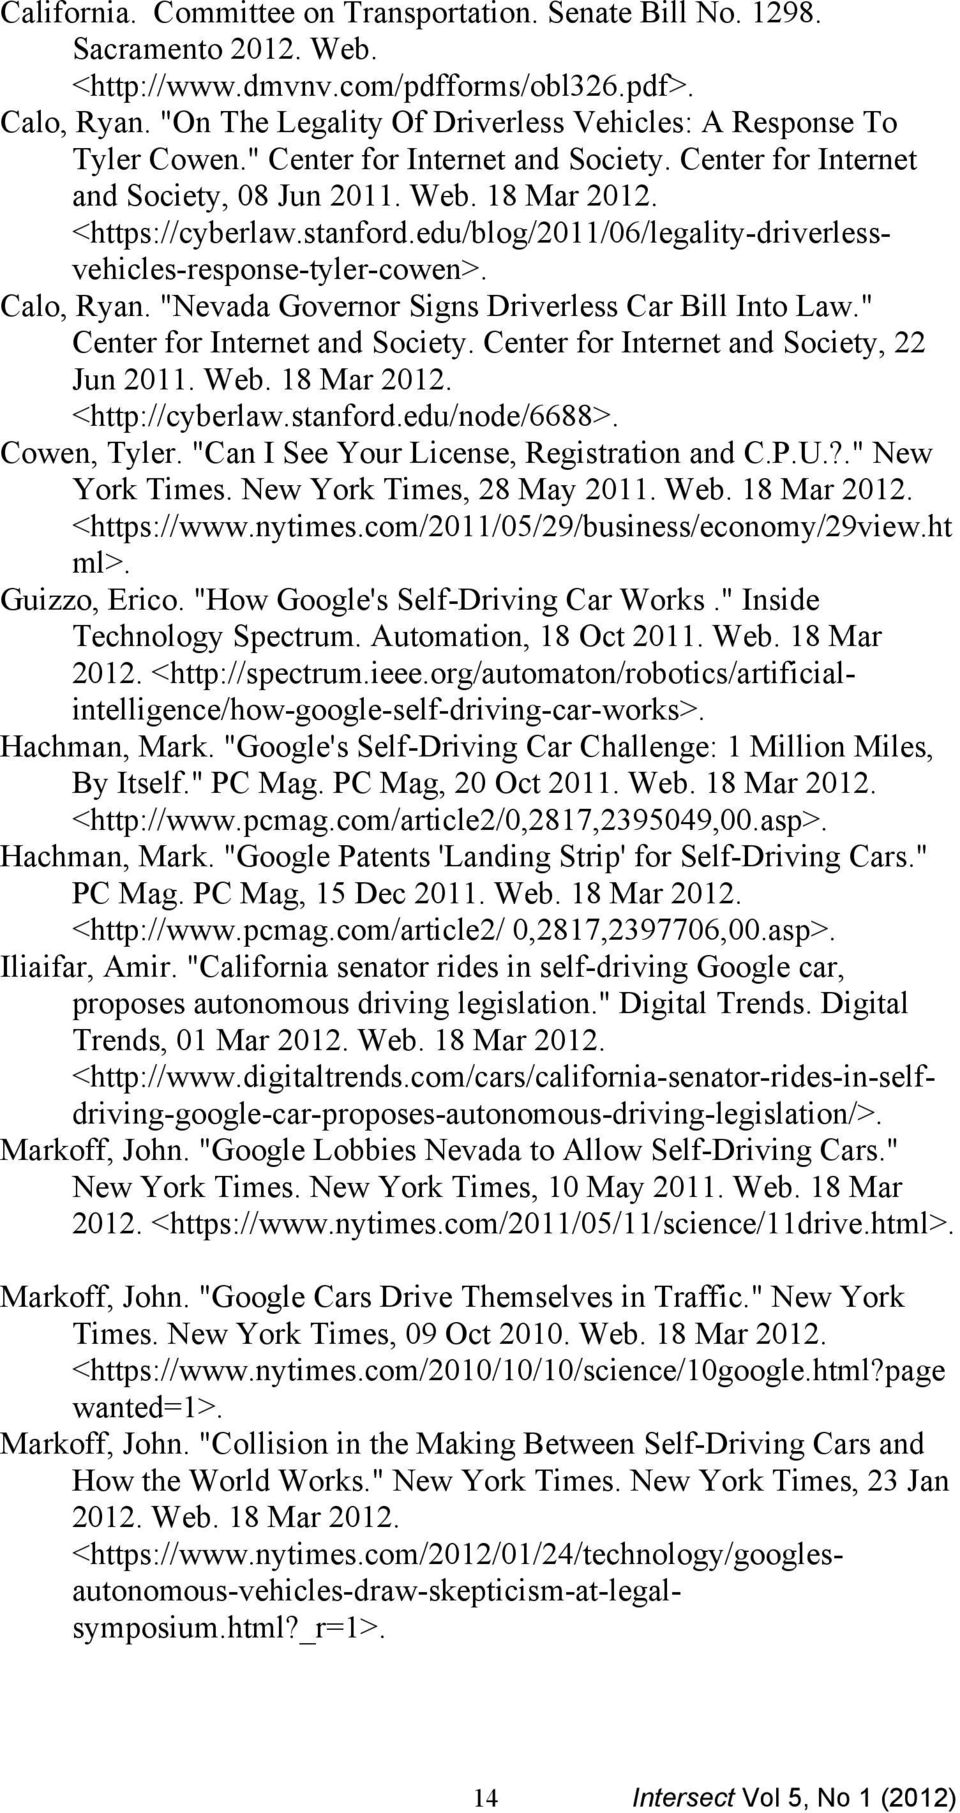 "edu/blog/2011/06/legality-driverlessvehicles-response-tyler-cowen>. Calo, Ryan. ""Nevada Governor Signs Driverless Car Bill Into Law."" Center for Internet and Society."